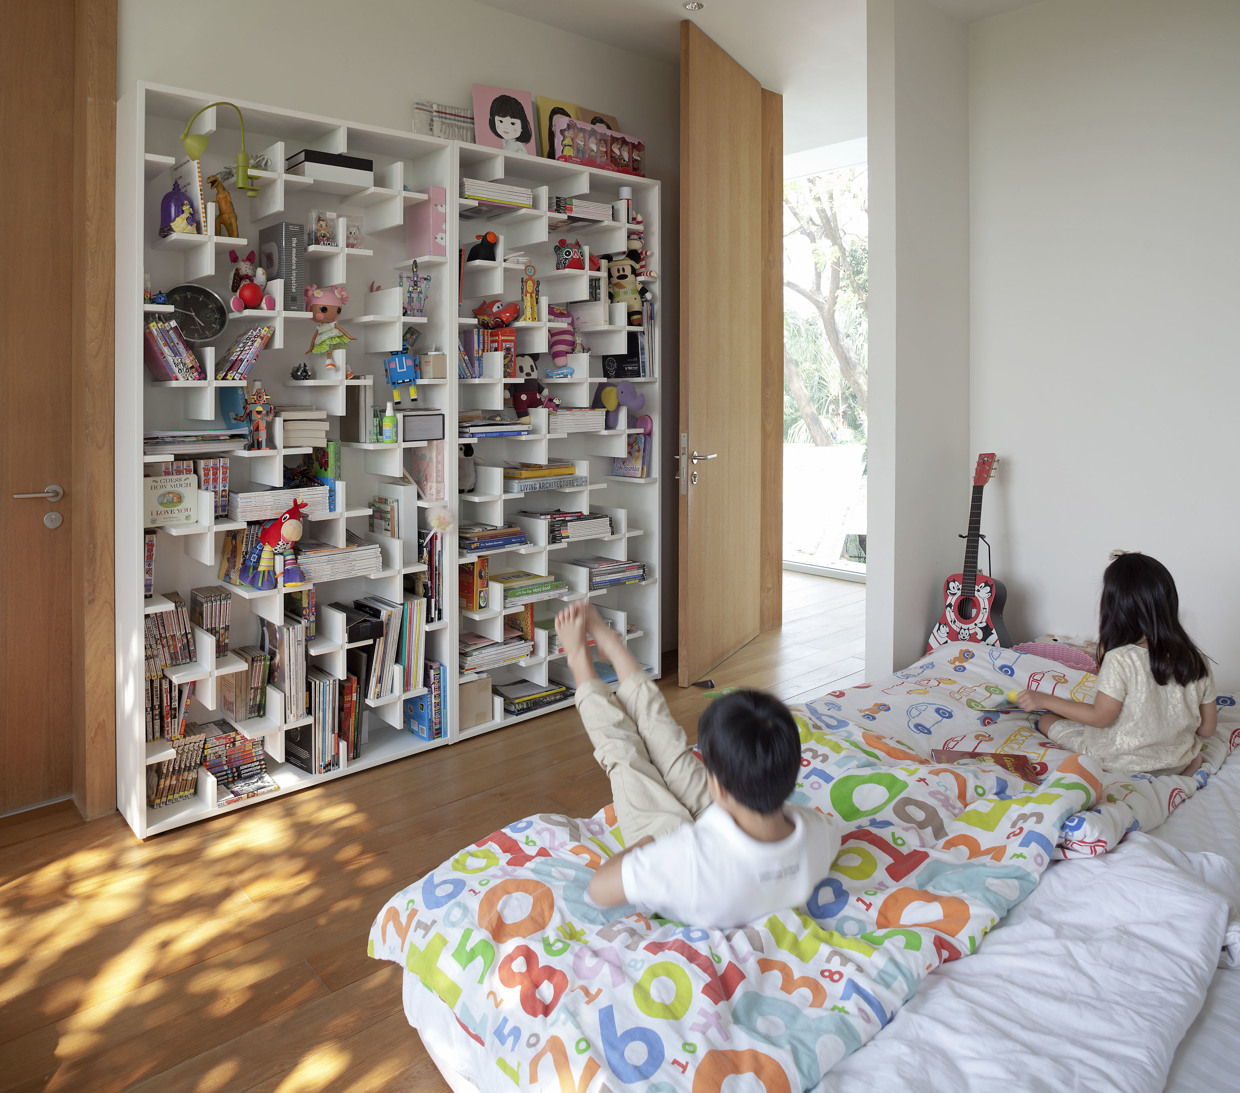 Creative kids room interior design ideas for Creative room decor